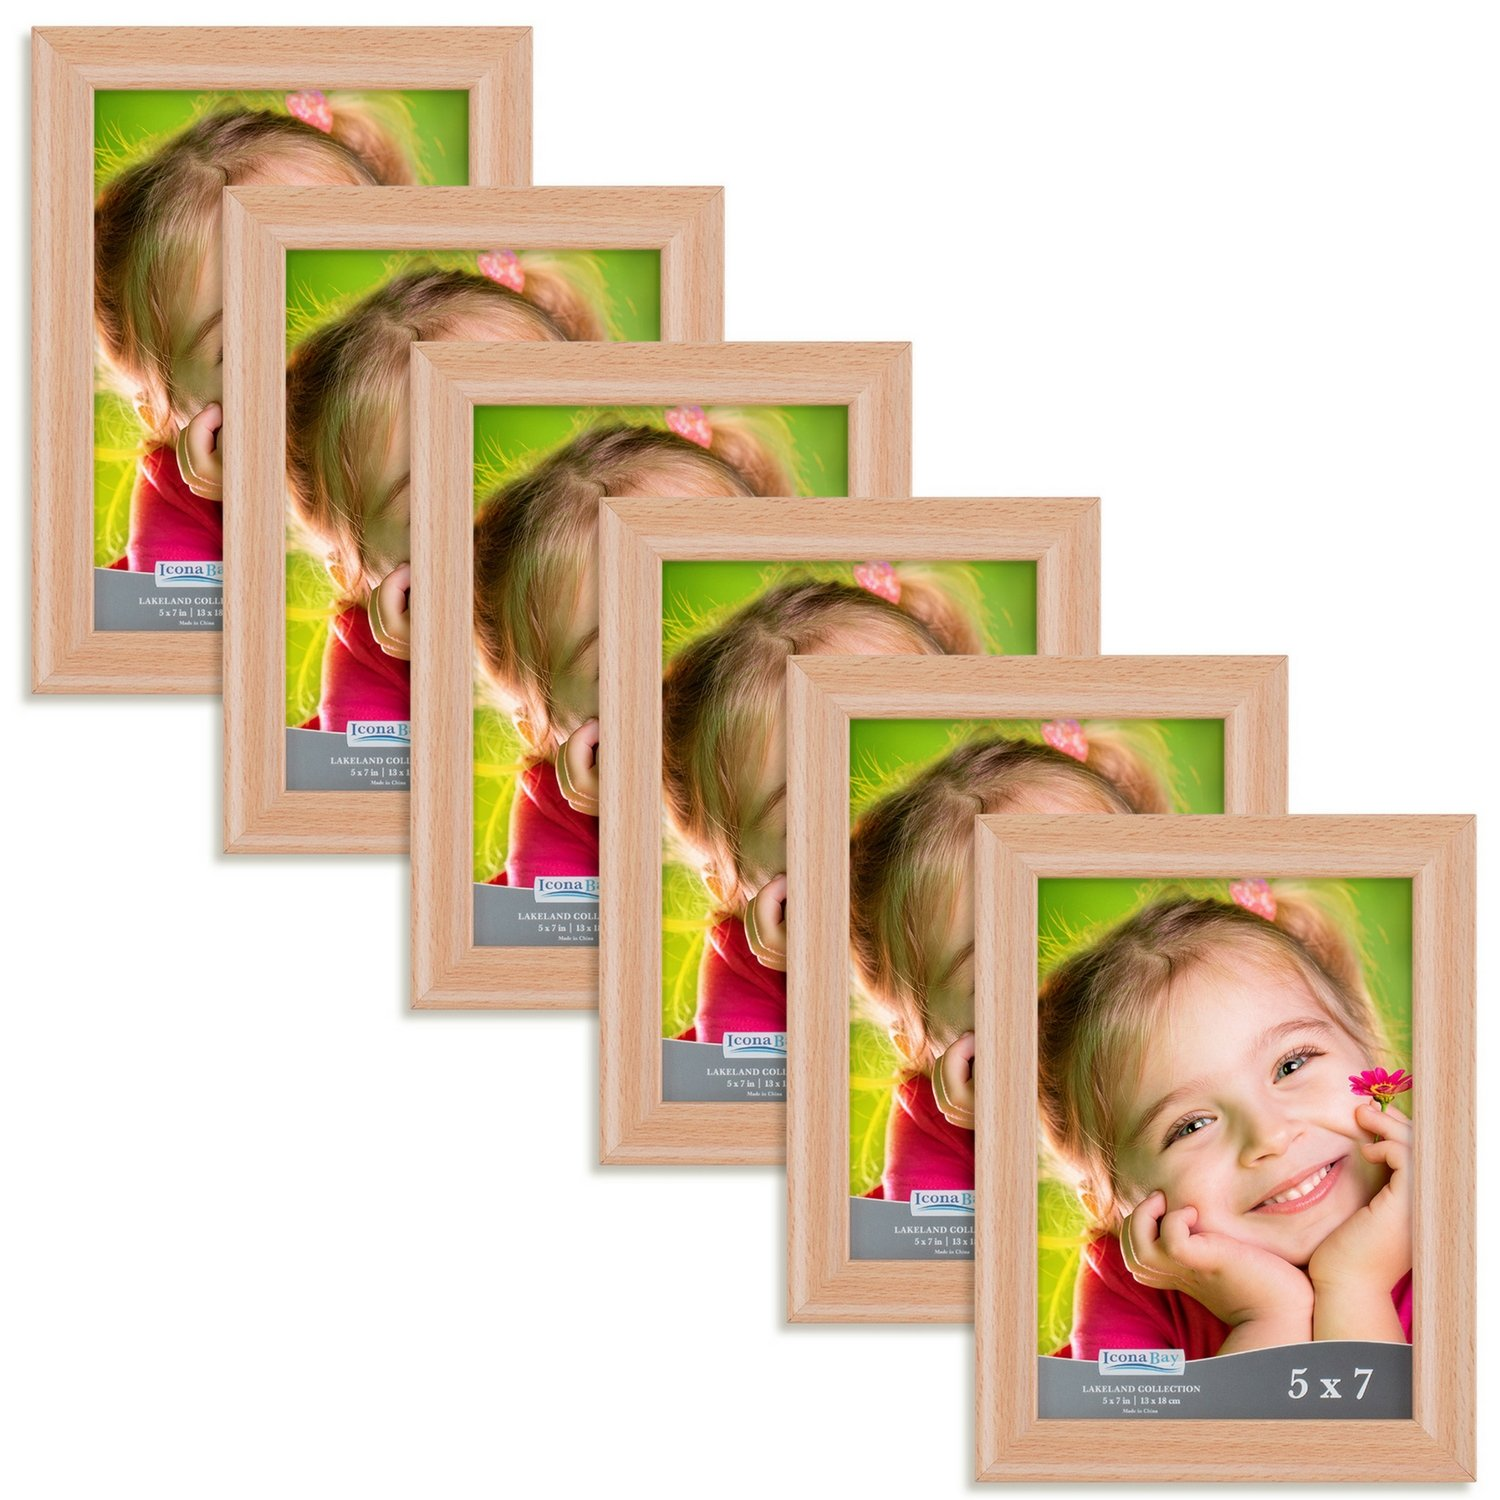 Icona Bay 5x7 Picture Frames 5x7 (6 Pack, Beechwood Finish), Vintage Frames, Wooden Picture Frame, Frames for Wall or Table, 5 x 7 Frames for Family, Dog, Or Baby, Lakeland Collection